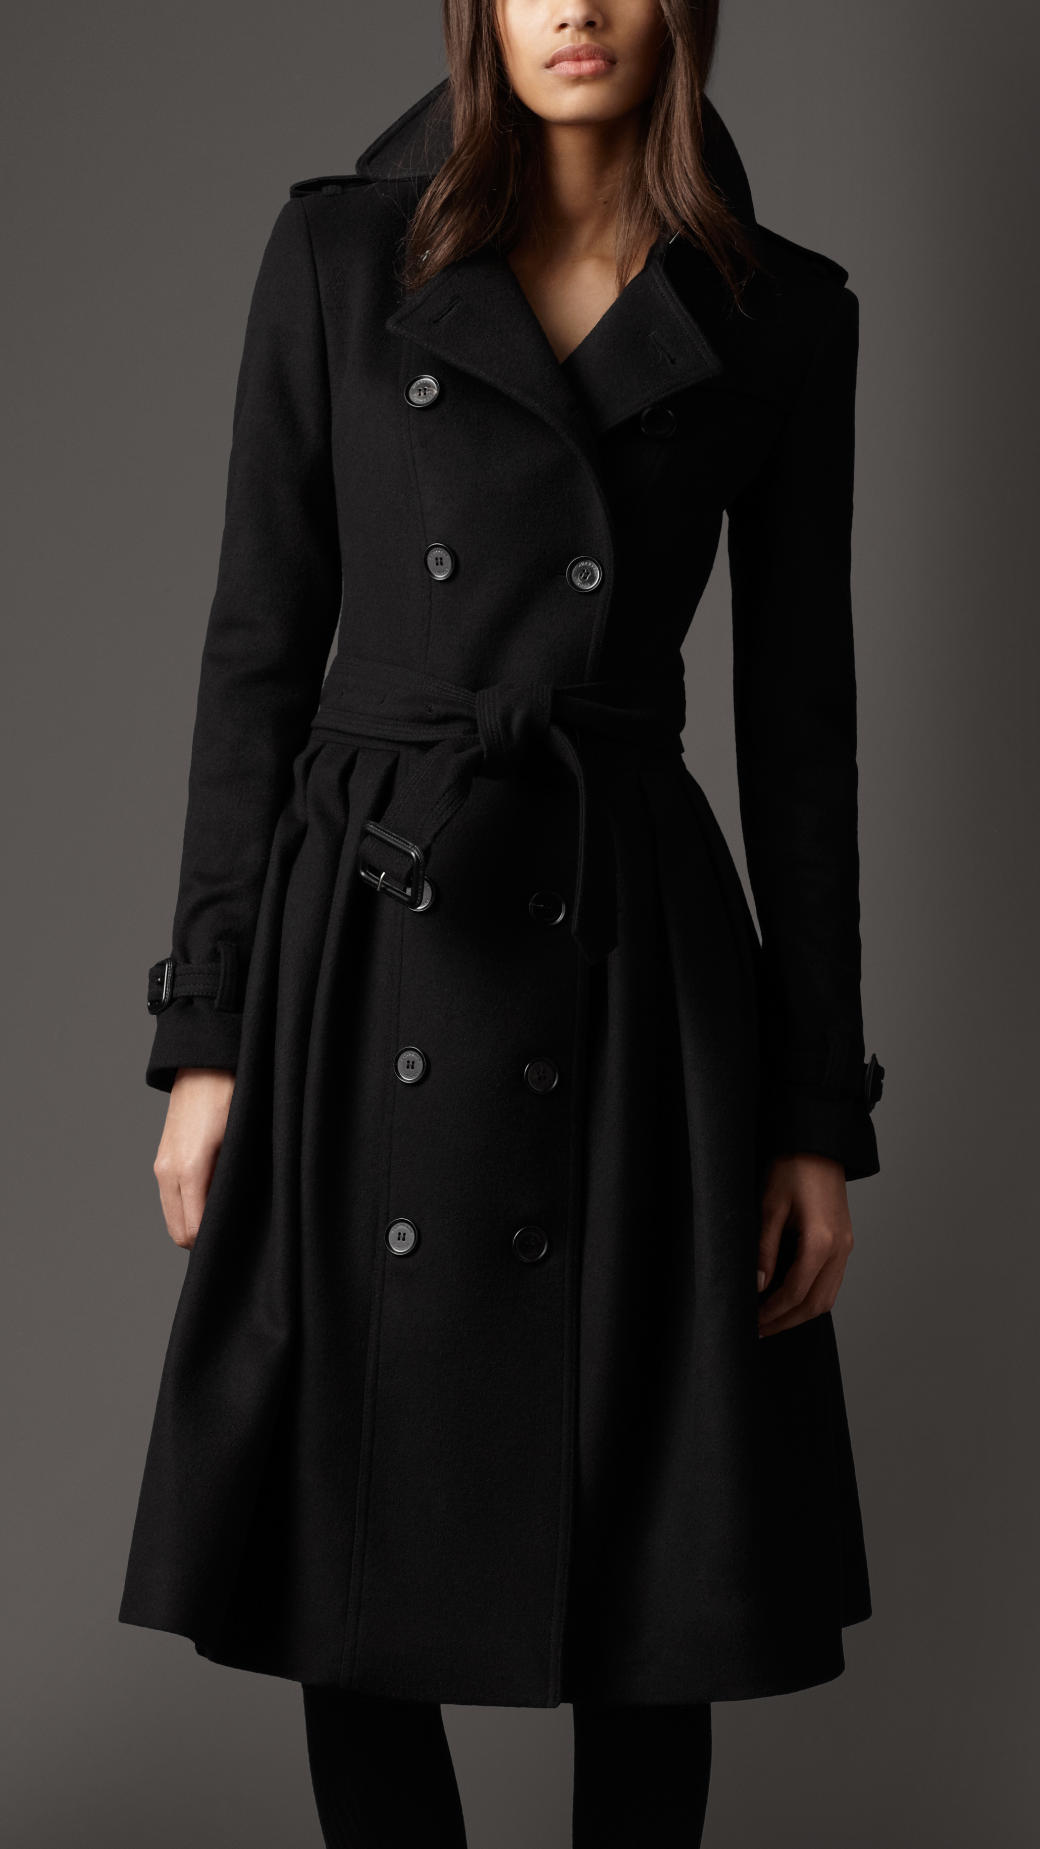 Burberry Full Skirt Virgin Wool and Cashmere Coat in Black | Lyst